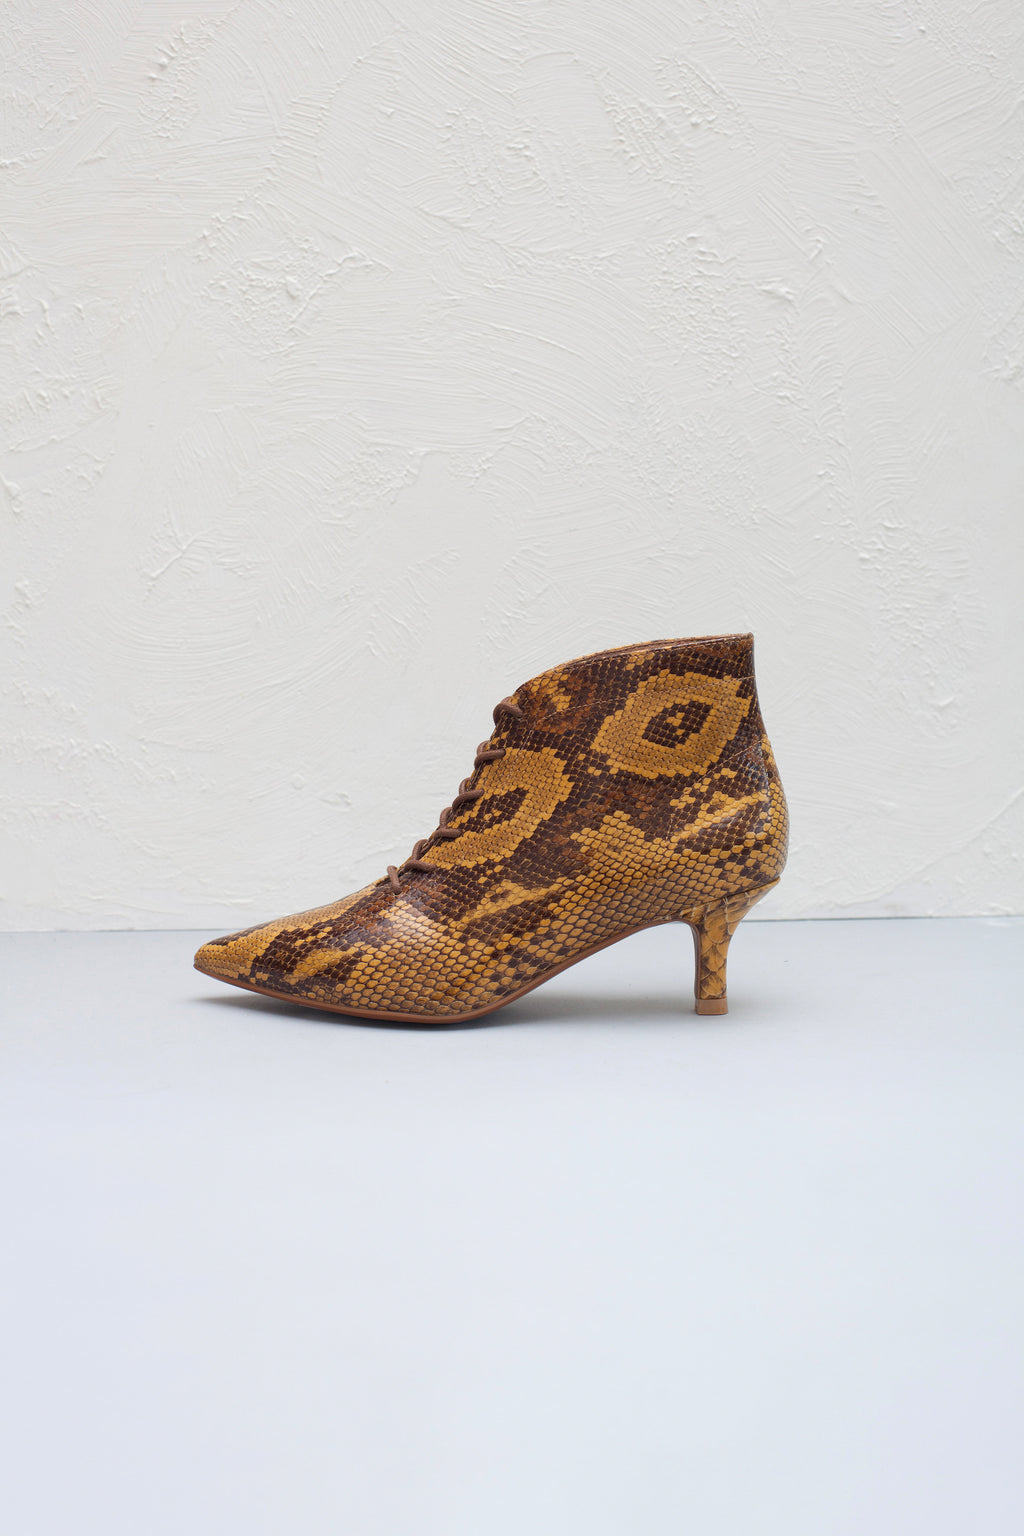 Kitten heel lace up boots in natural snake print leather by Miss L Fire.